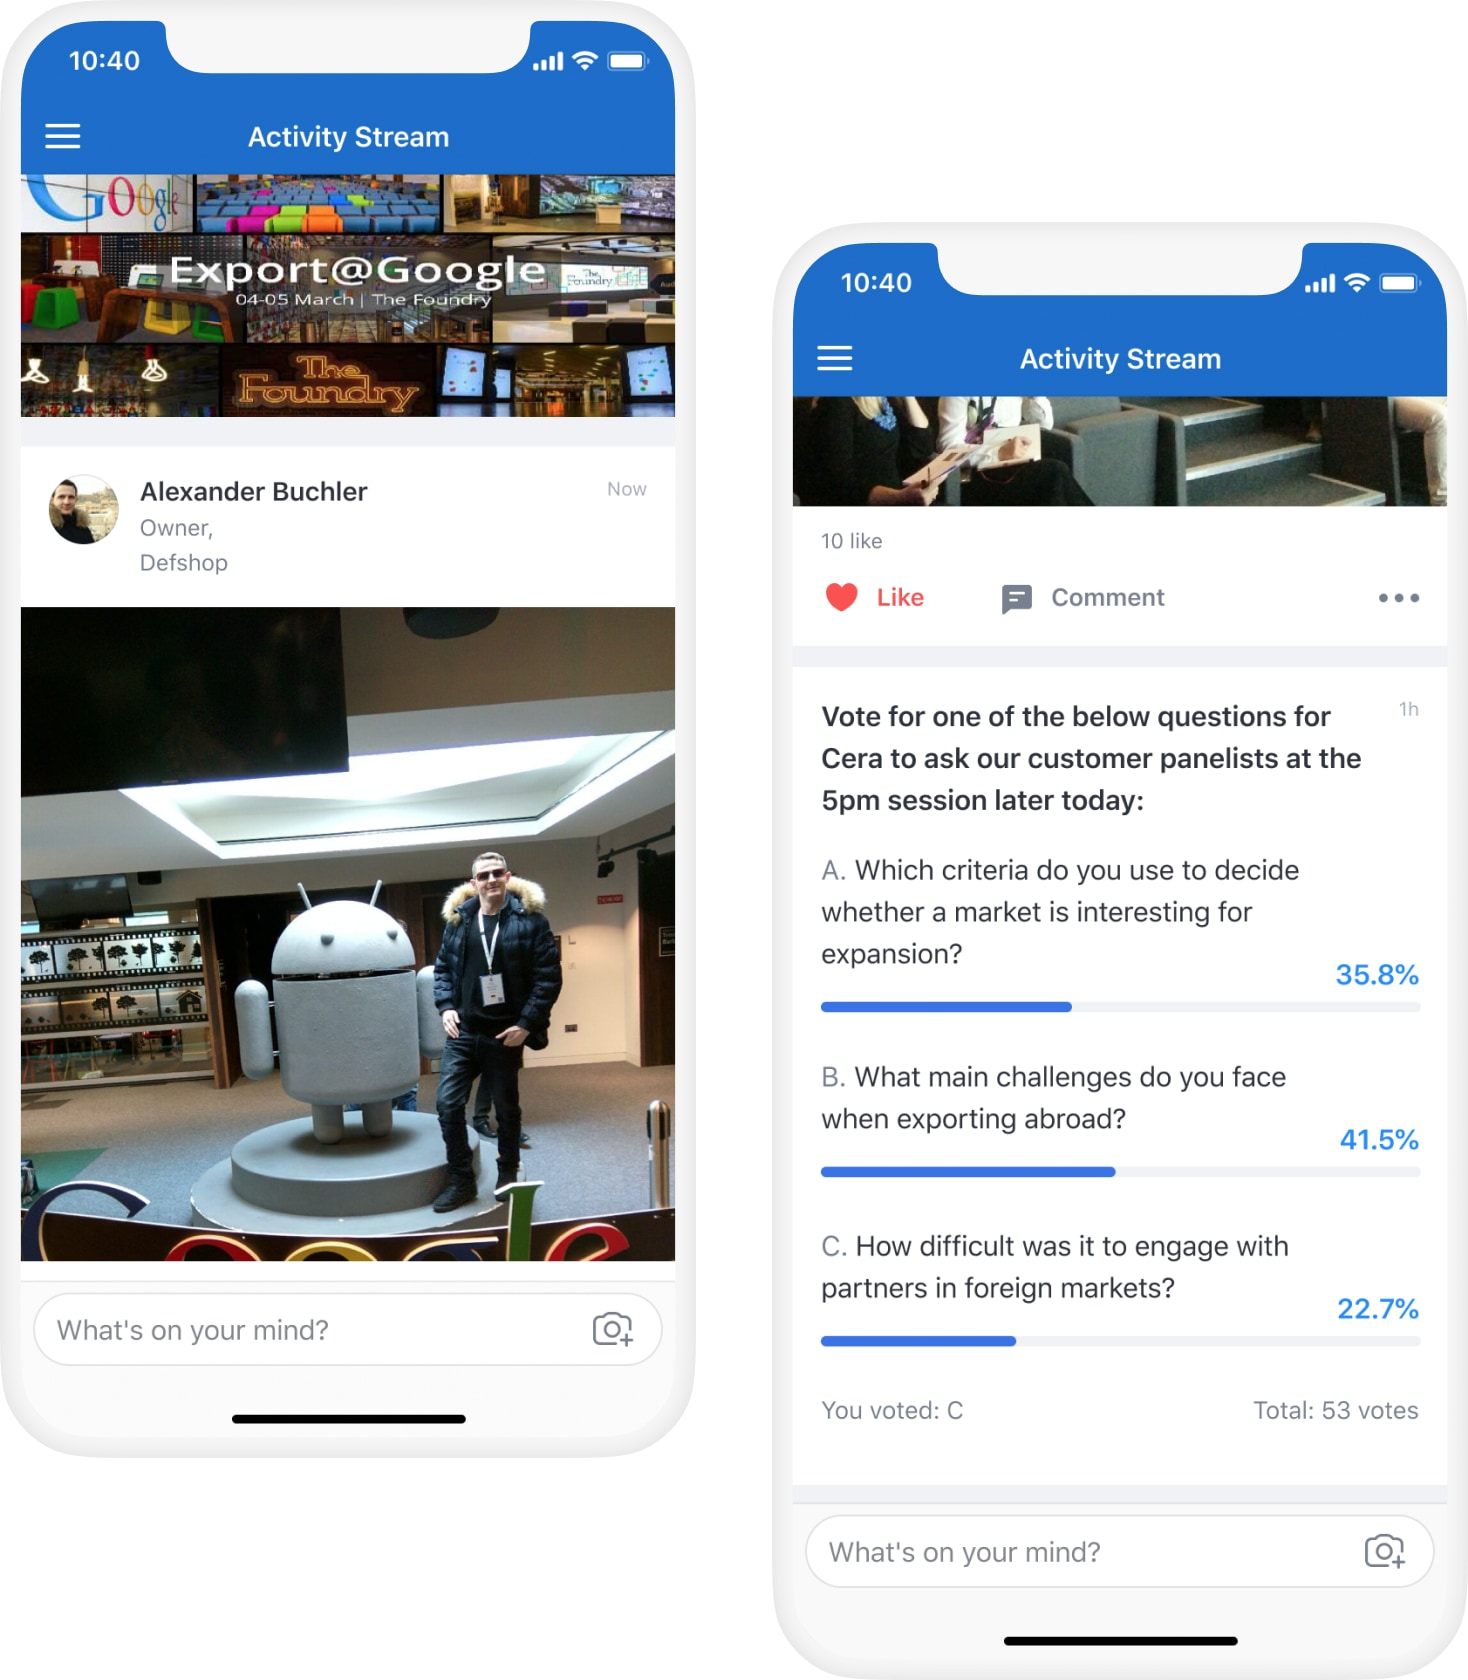 Why it was easy for Google to build a social event